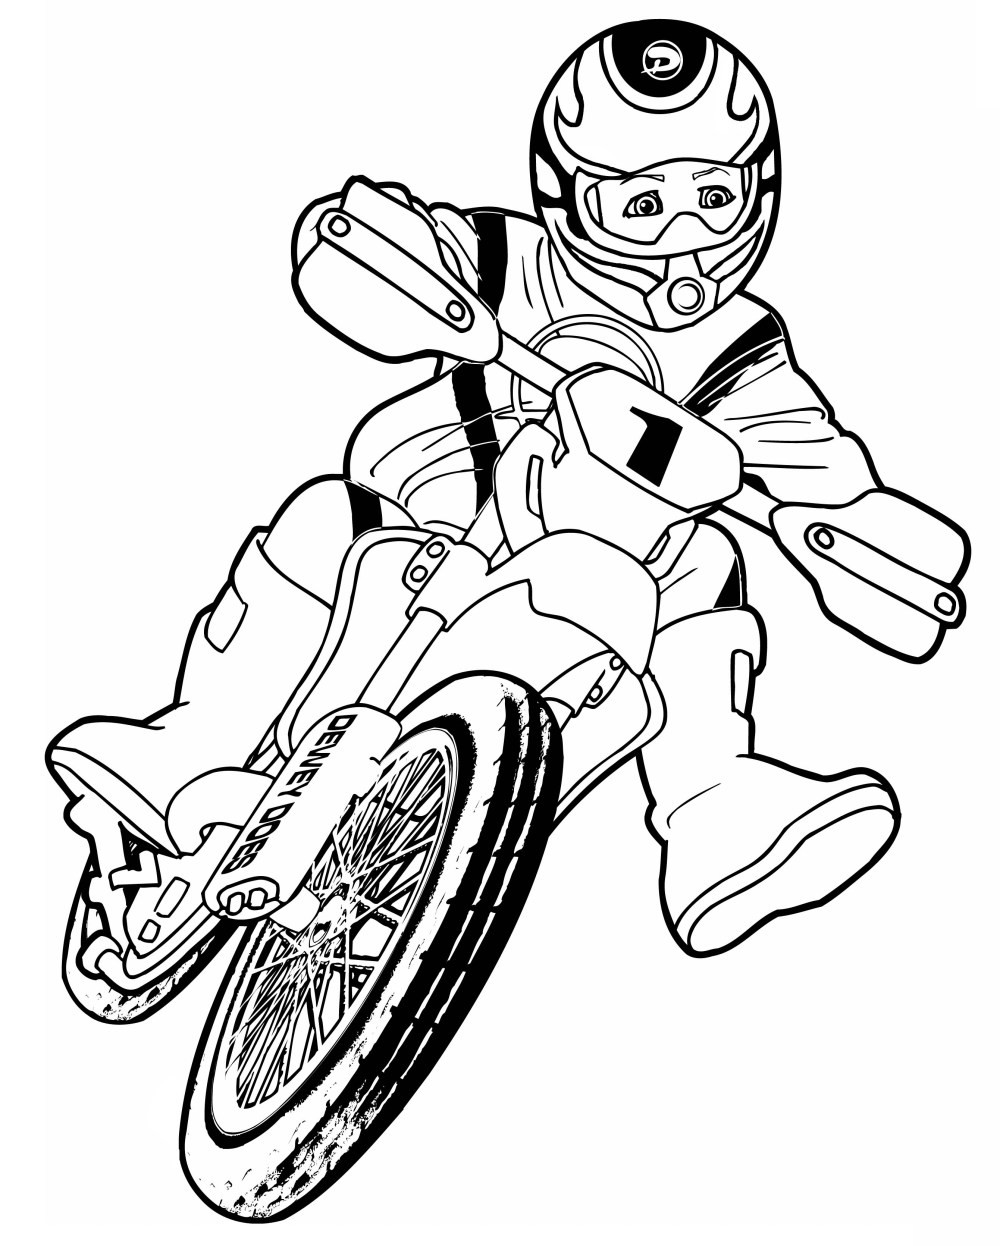 medium resolution of motocross sweatshirt color printouts coloring pages for adults coloring pages for